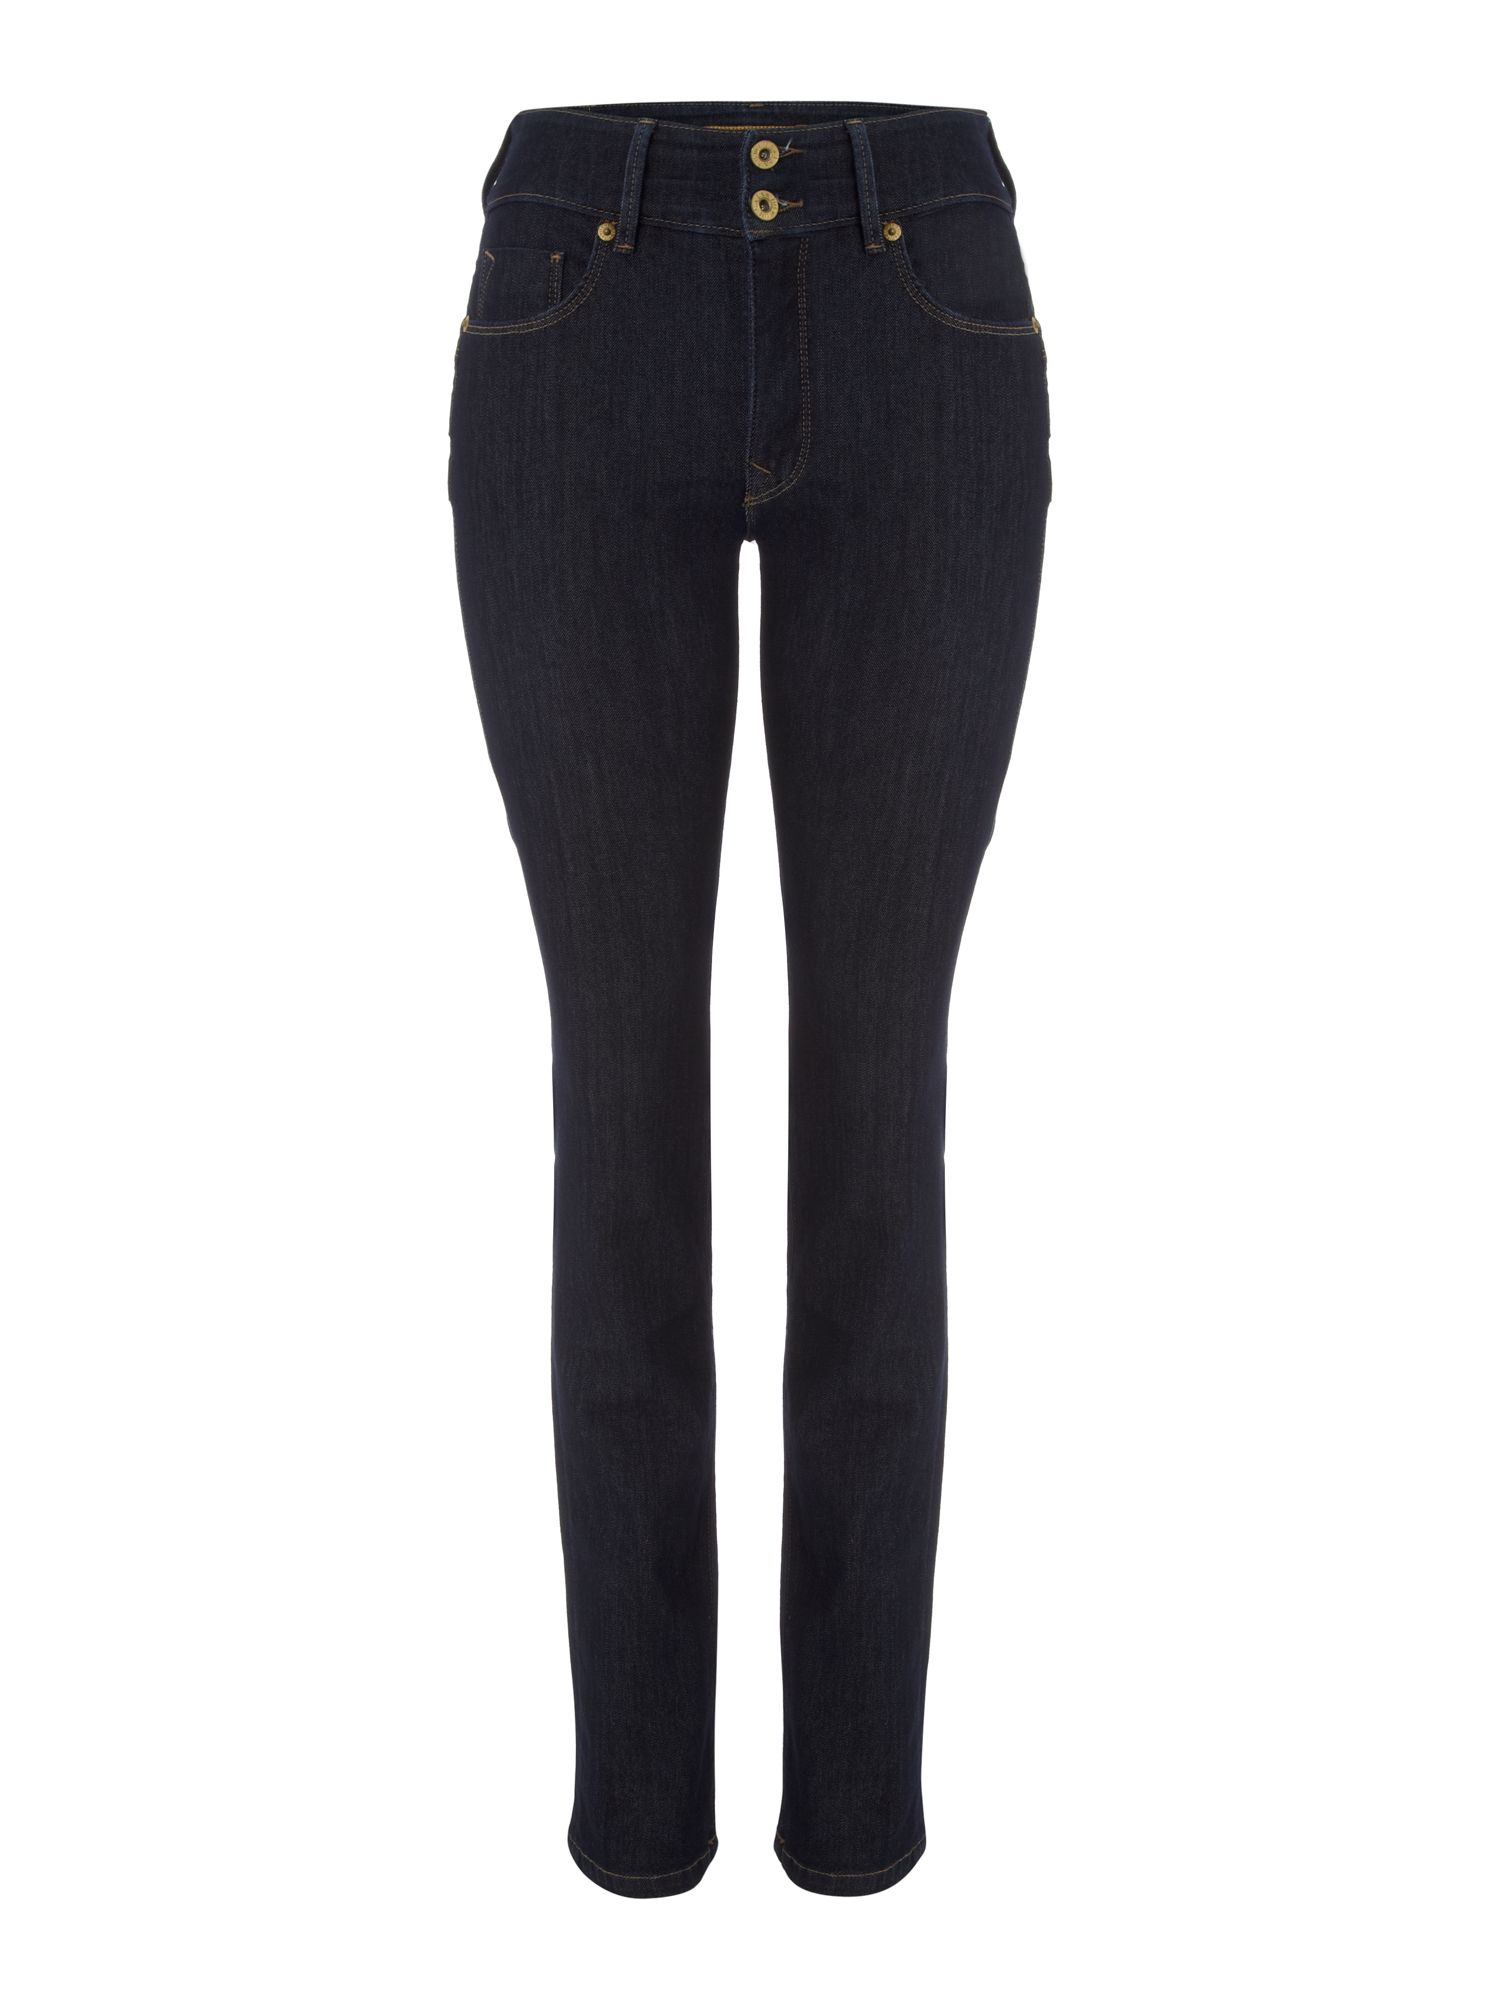 Secret Push-In straight jeans in Rinse